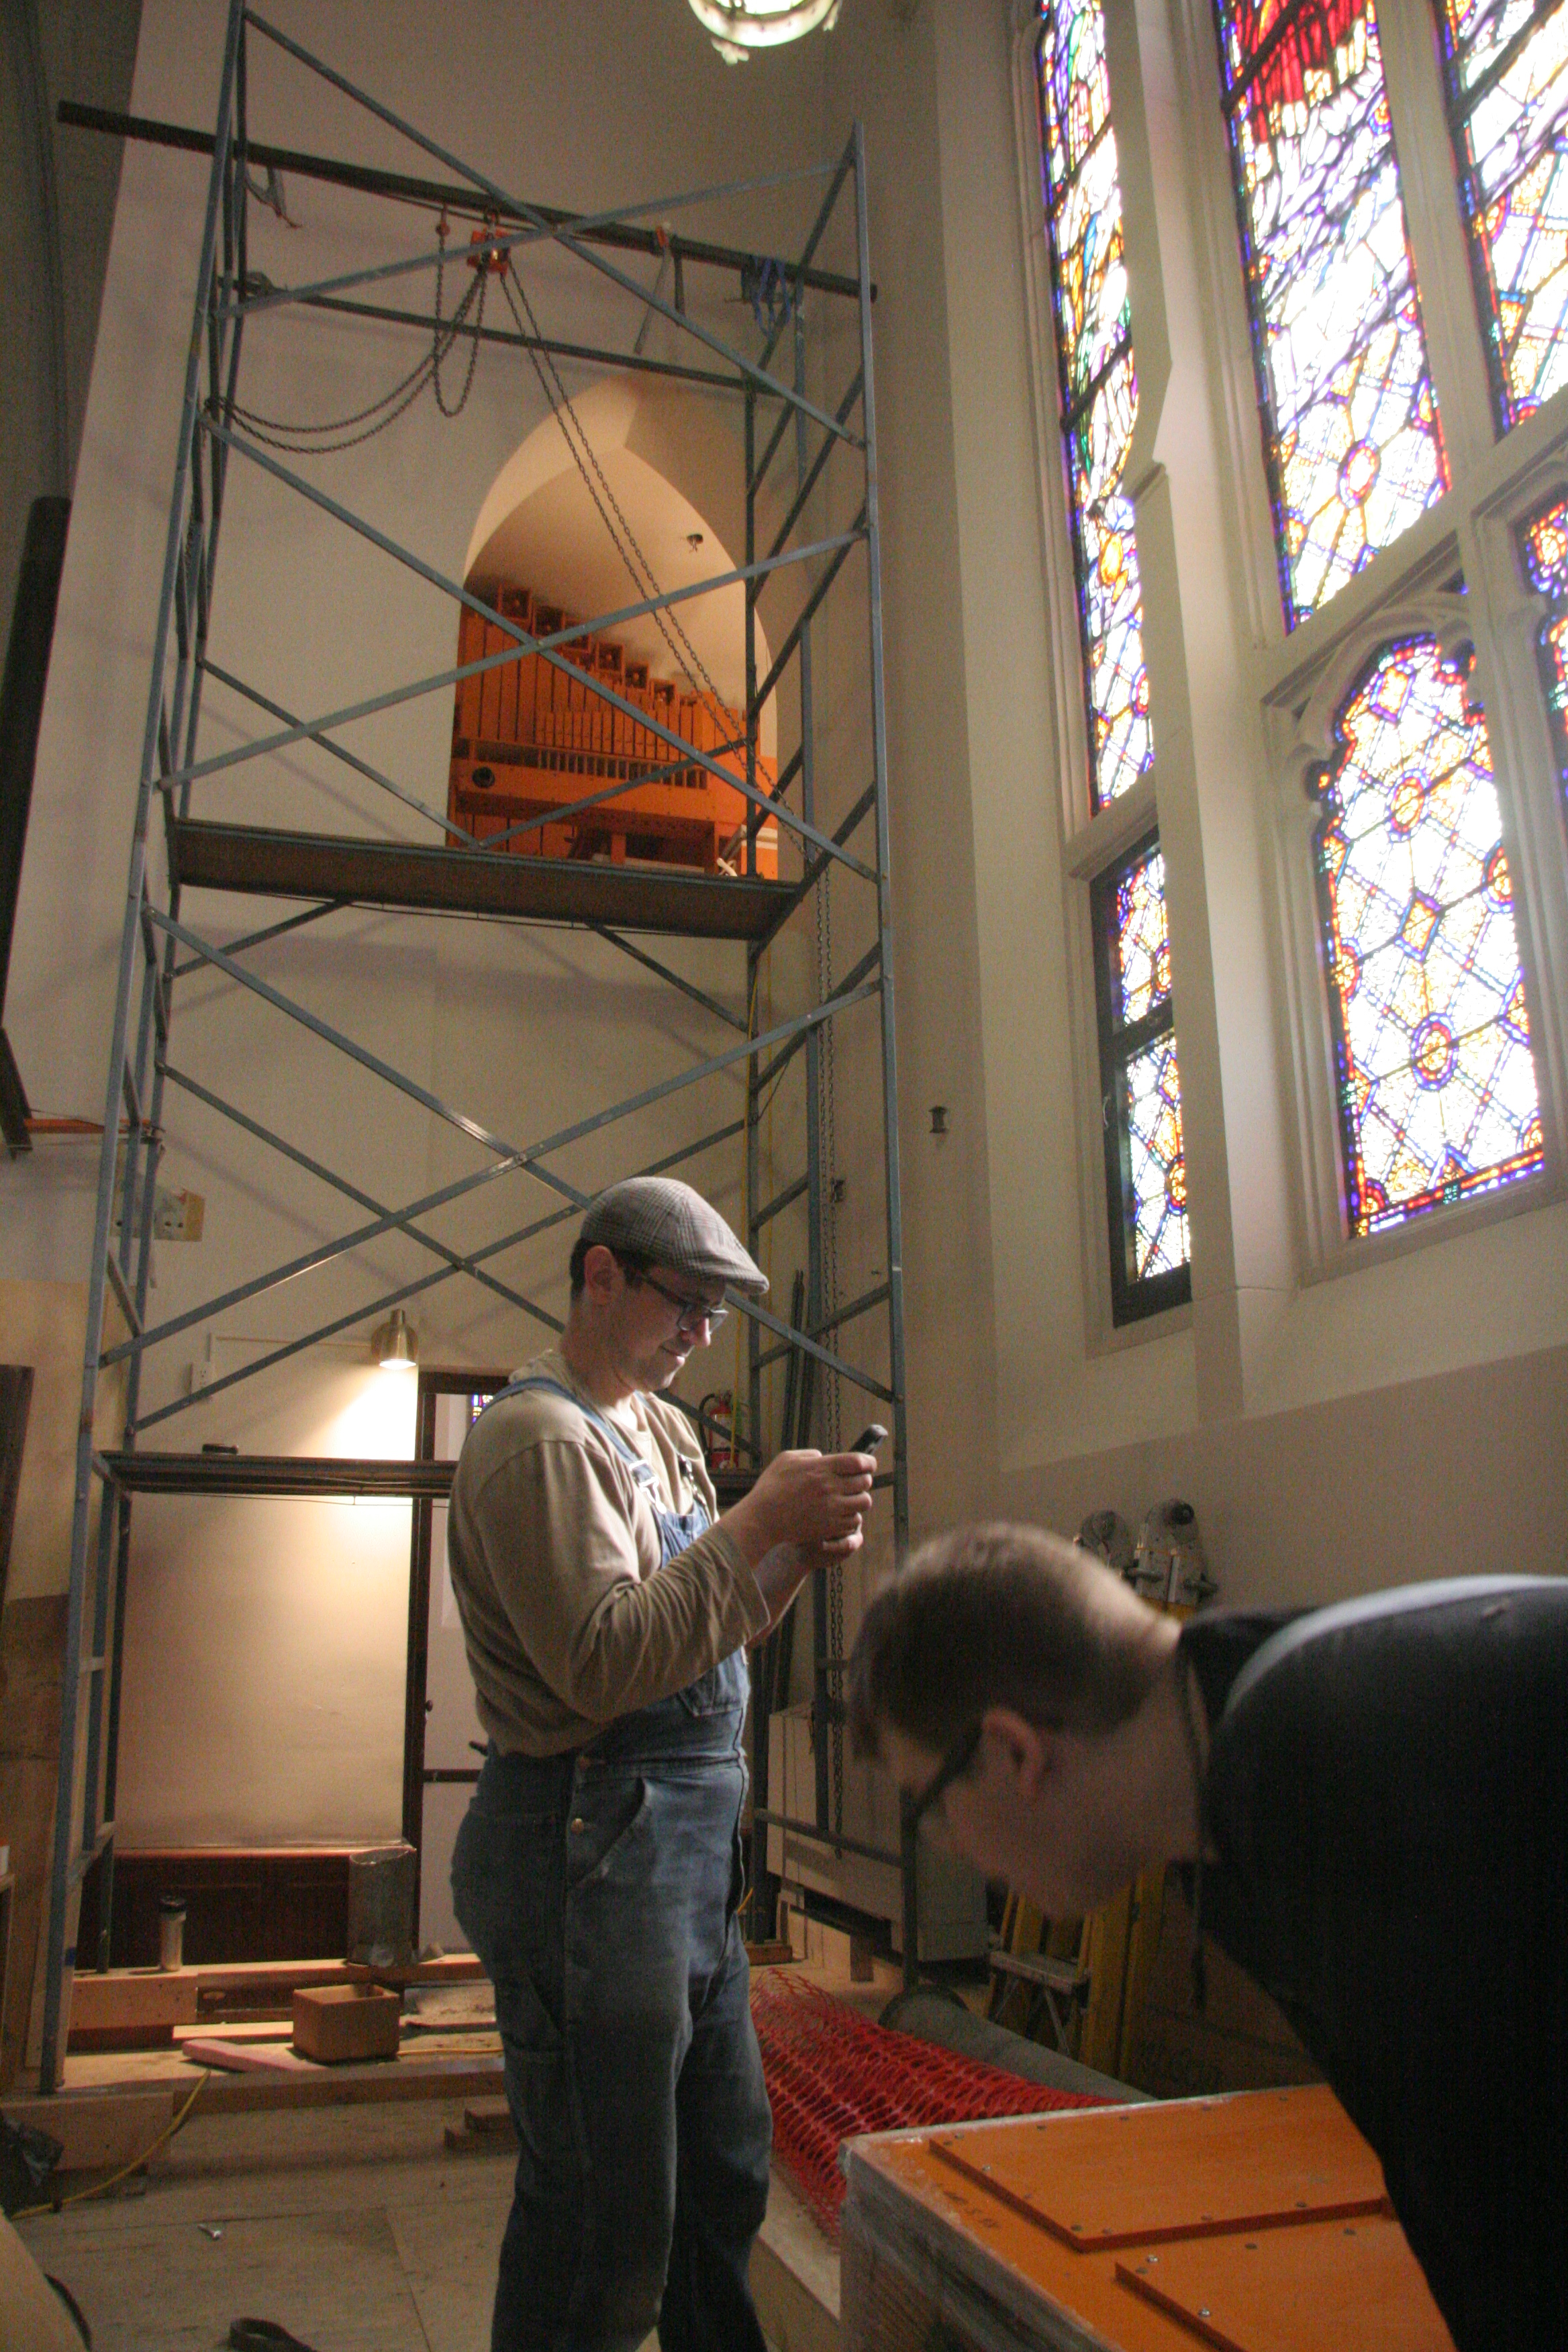 Donald Nordlie and Joe Brown with background showing pedal chamber and scaffolding.